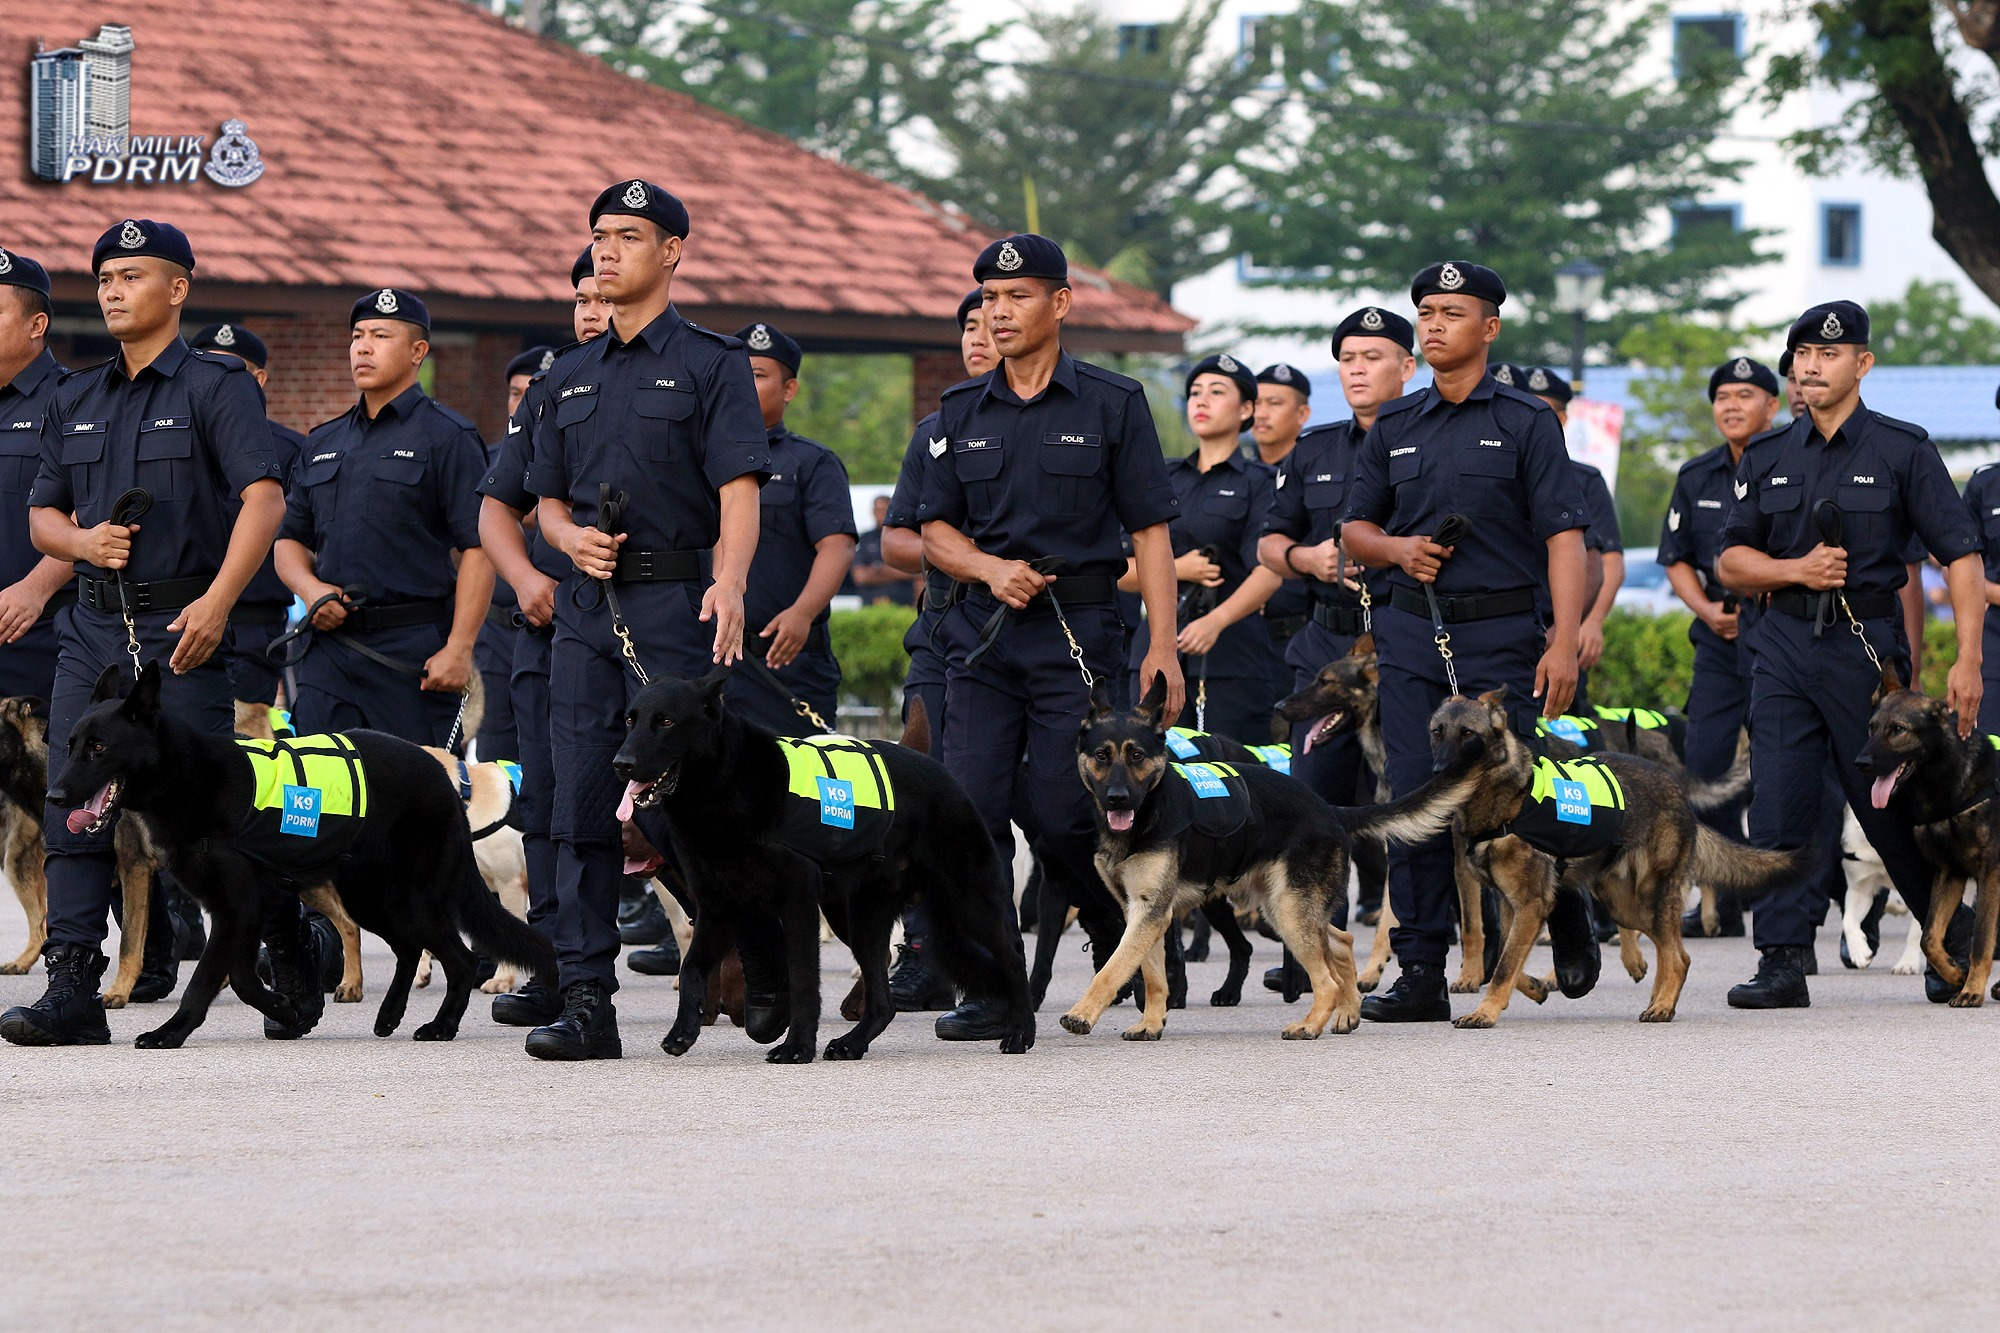 Image from Royal Malaysia Police/Facebook